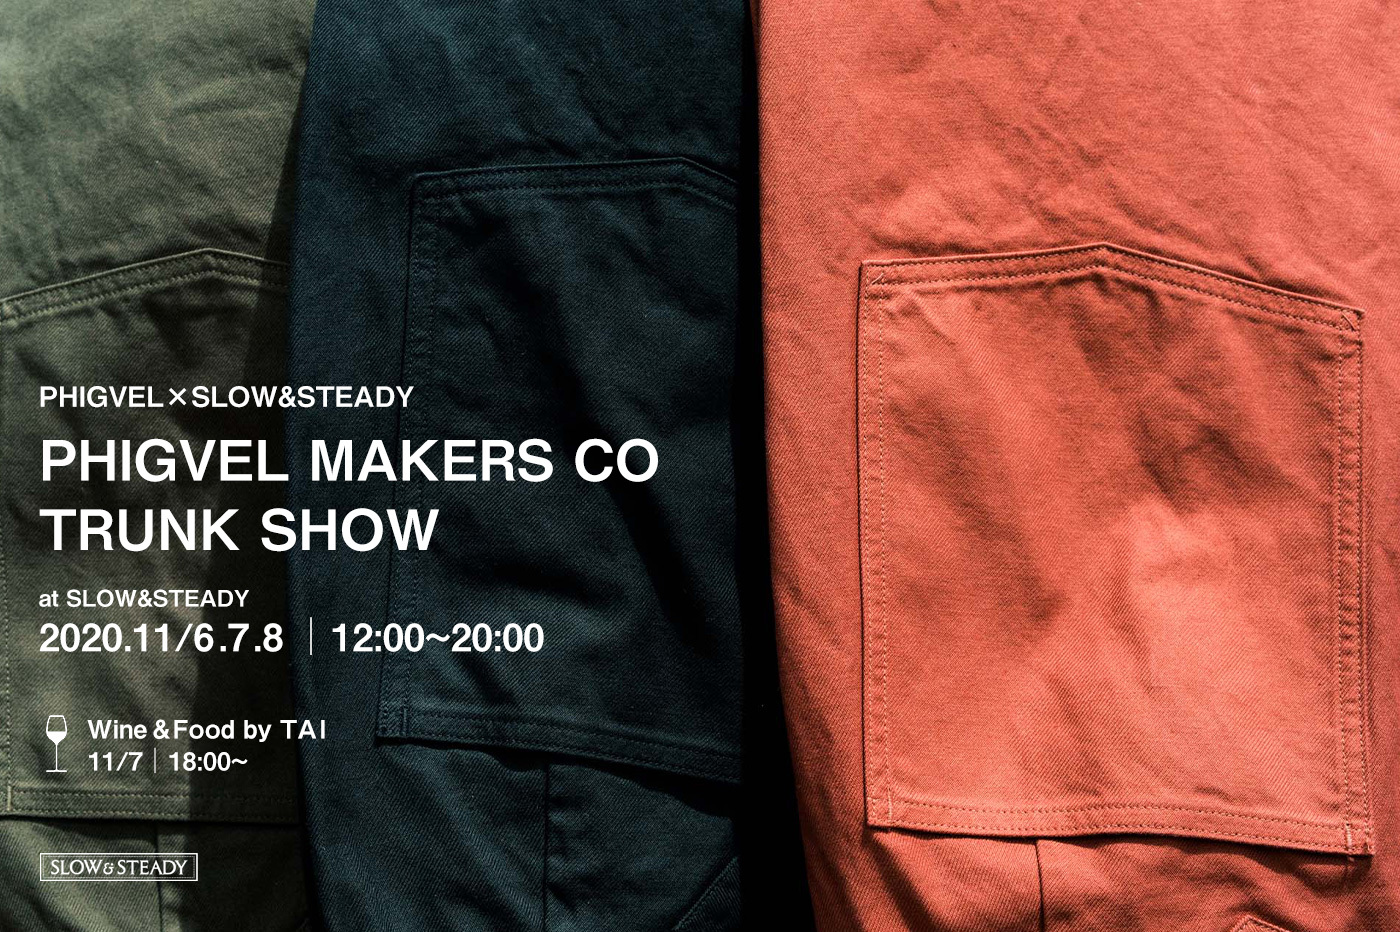 PHIGVEL Trunk Show at SLOW&STEADY